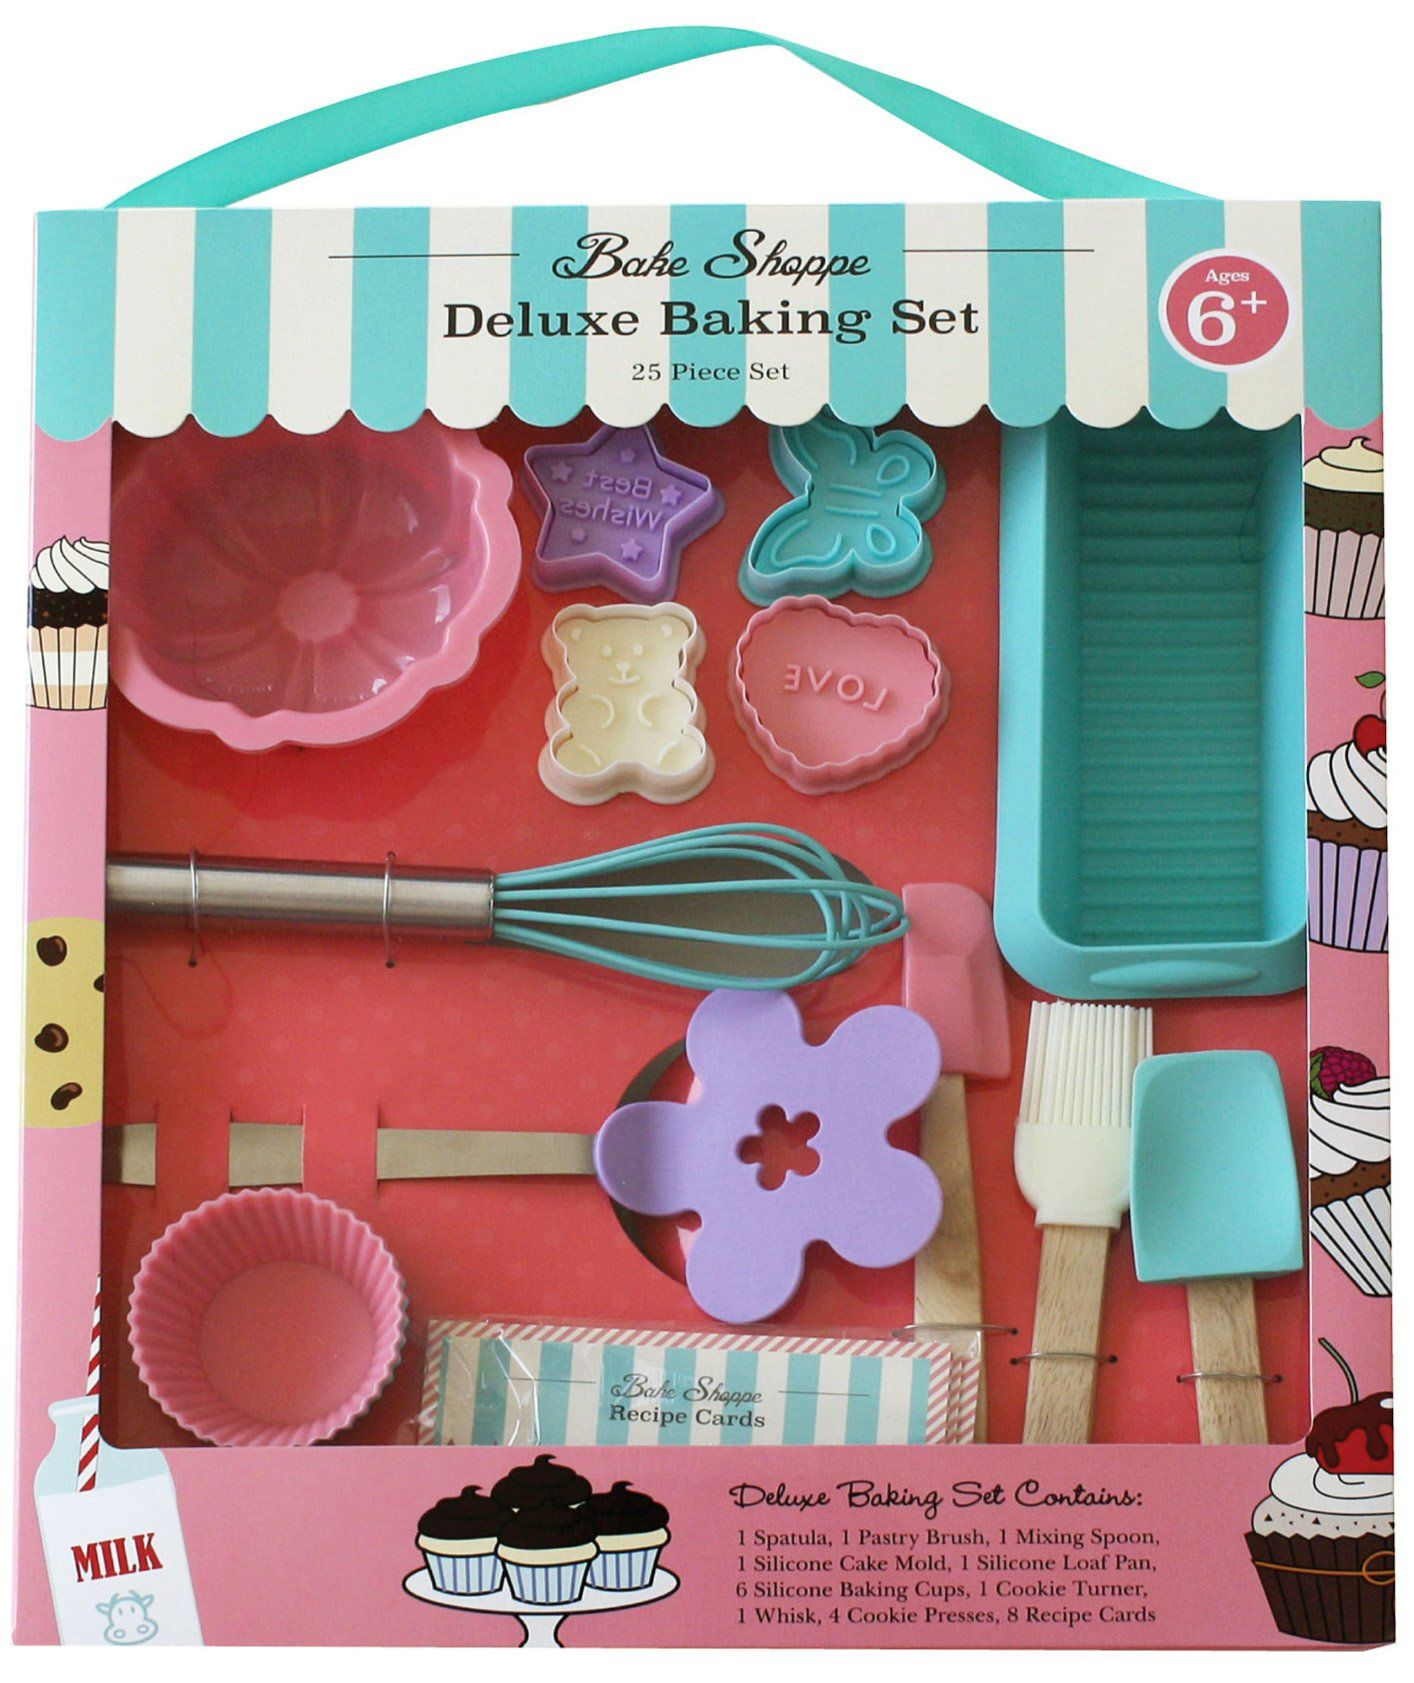 Bake Up Some Love With This Complete 25 Piece Deluxe Baking Set From Handstand Kids This High Quality Kids Cooking Set Baking Set Baking With Kids Baking Kit